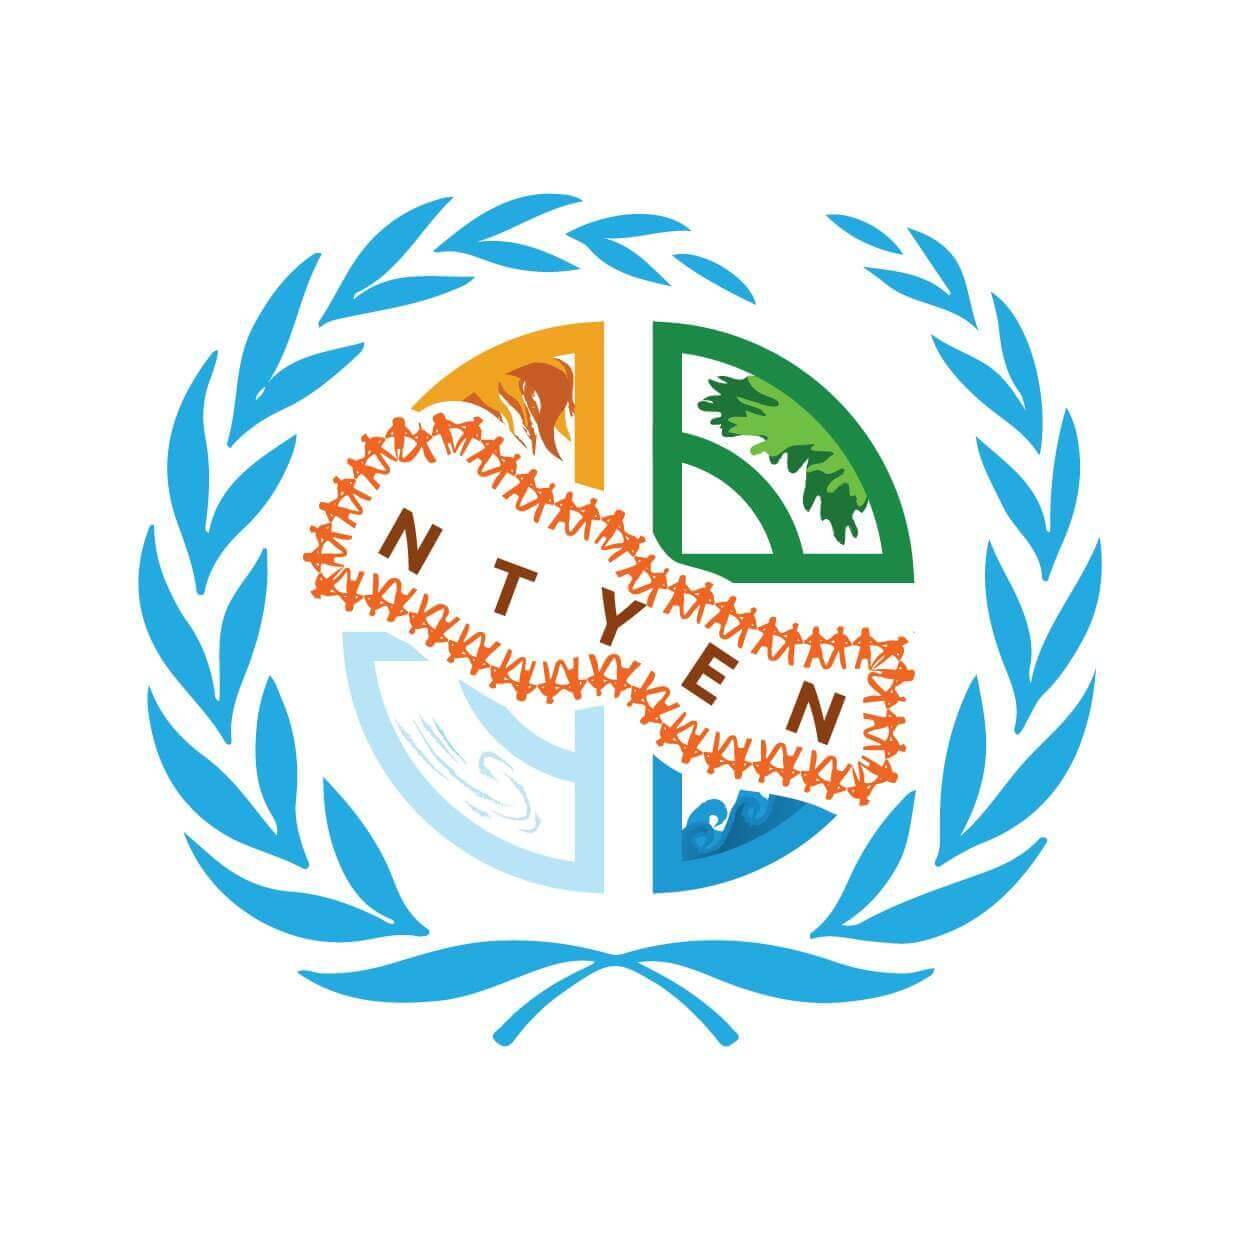 Nepal TUNZA Youth Environment Network Calls for Membership